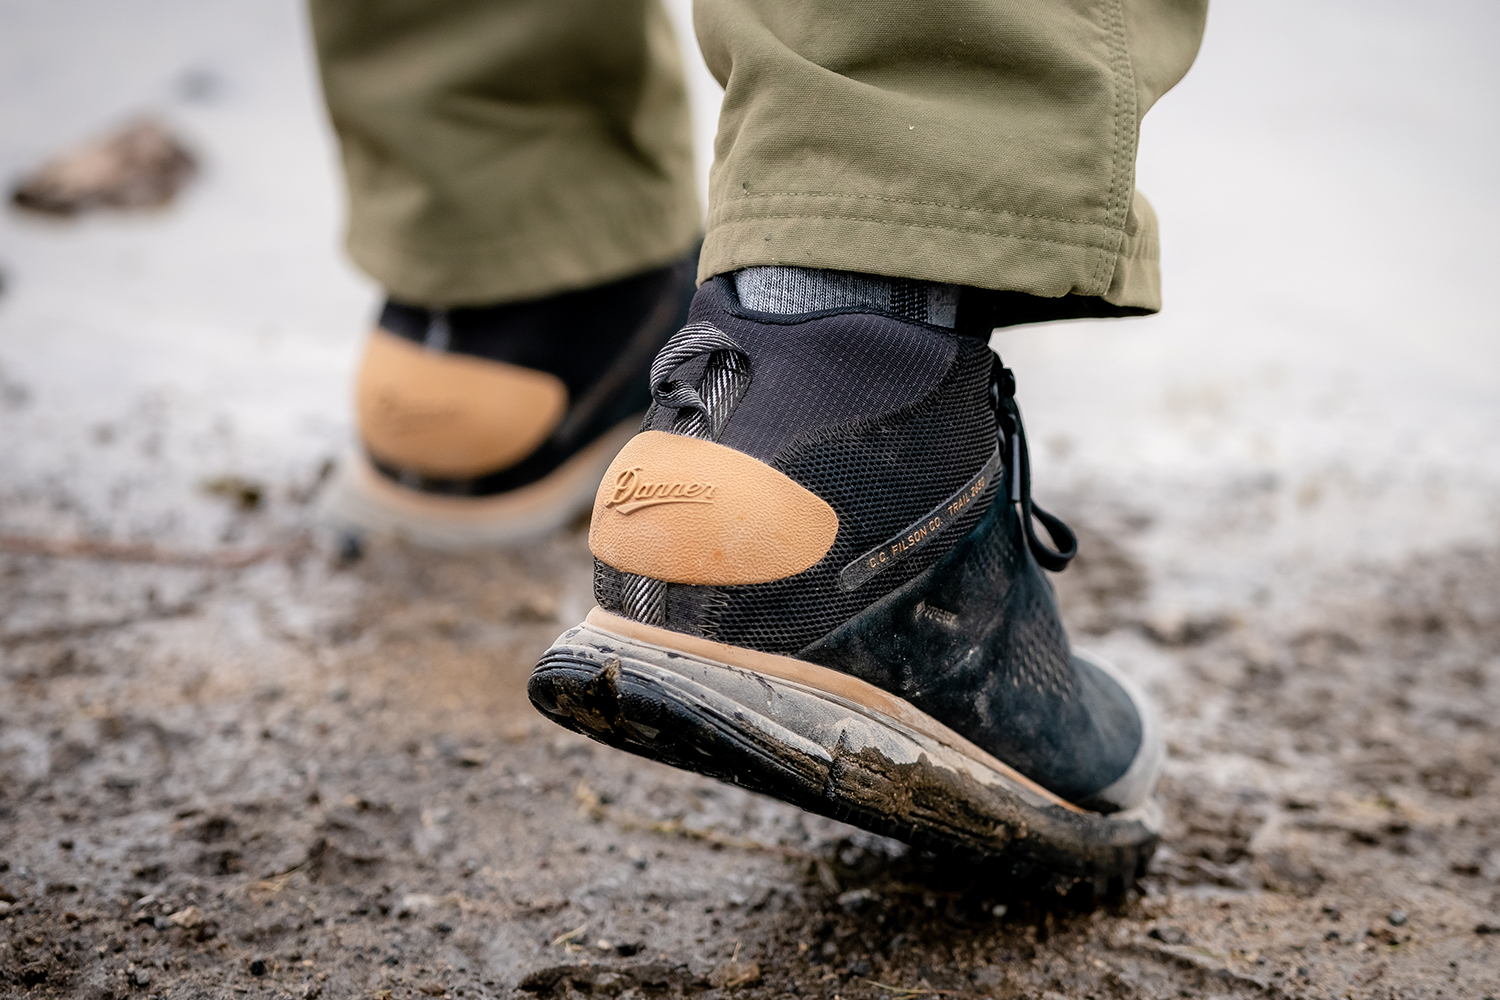 The heel counter on the Filson x Danner Trail 2650 Hiking Boots